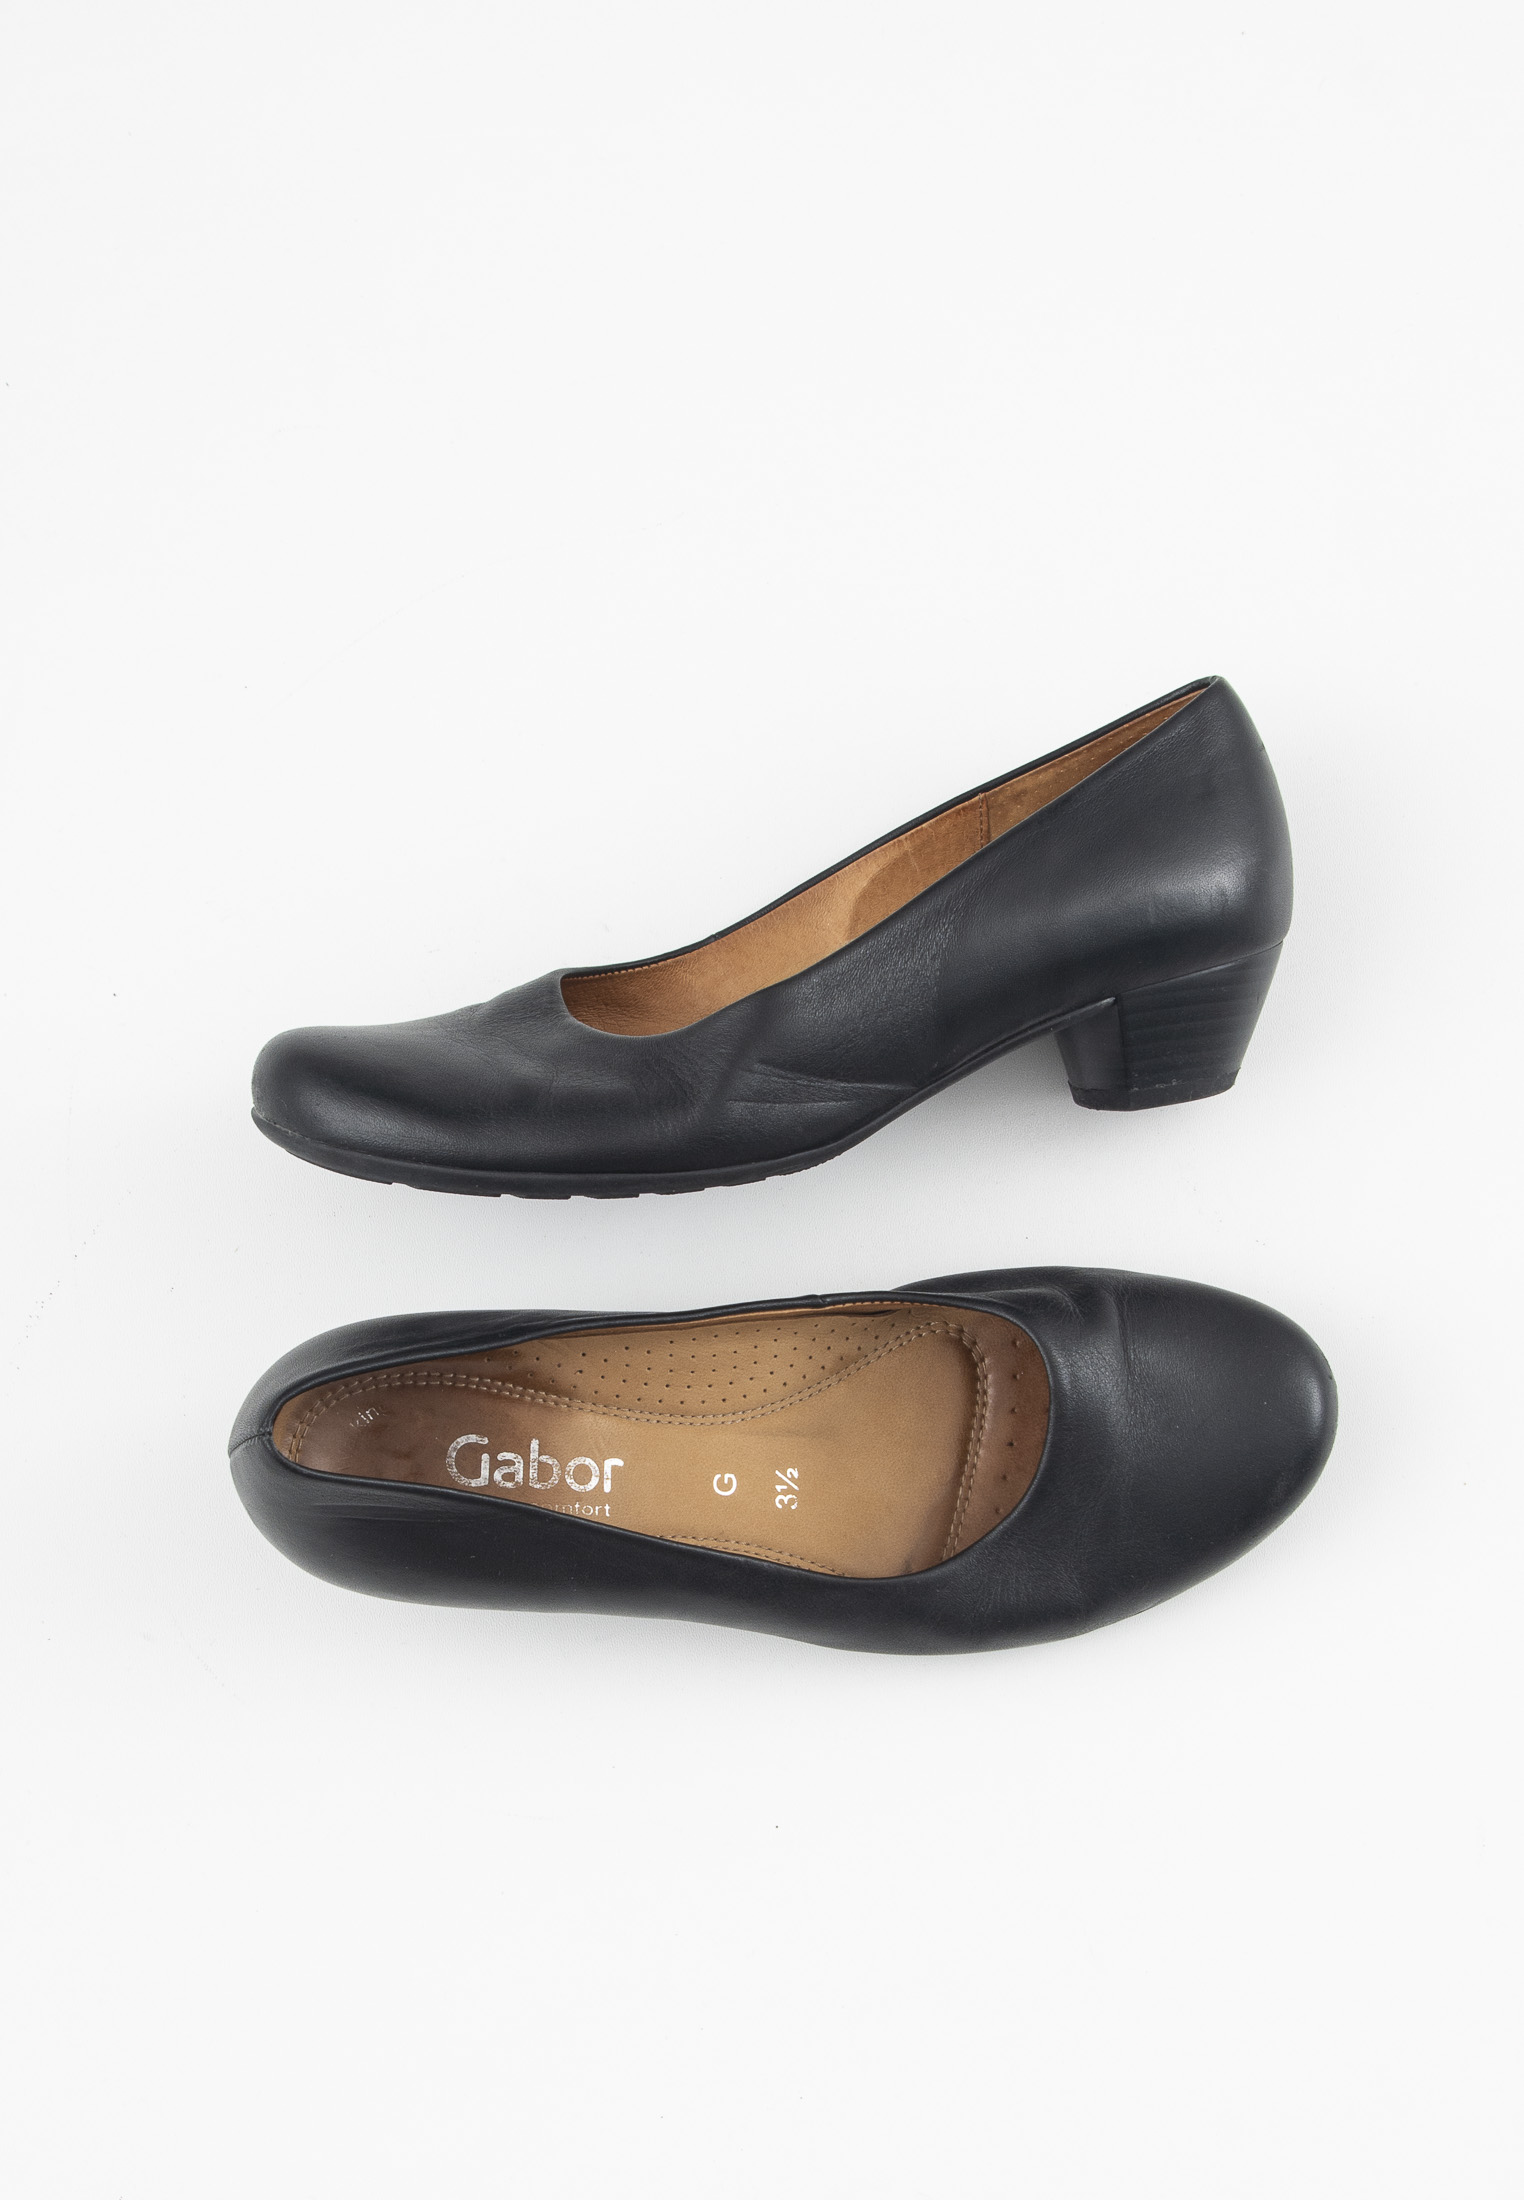 Gabor pumps, sort, 36